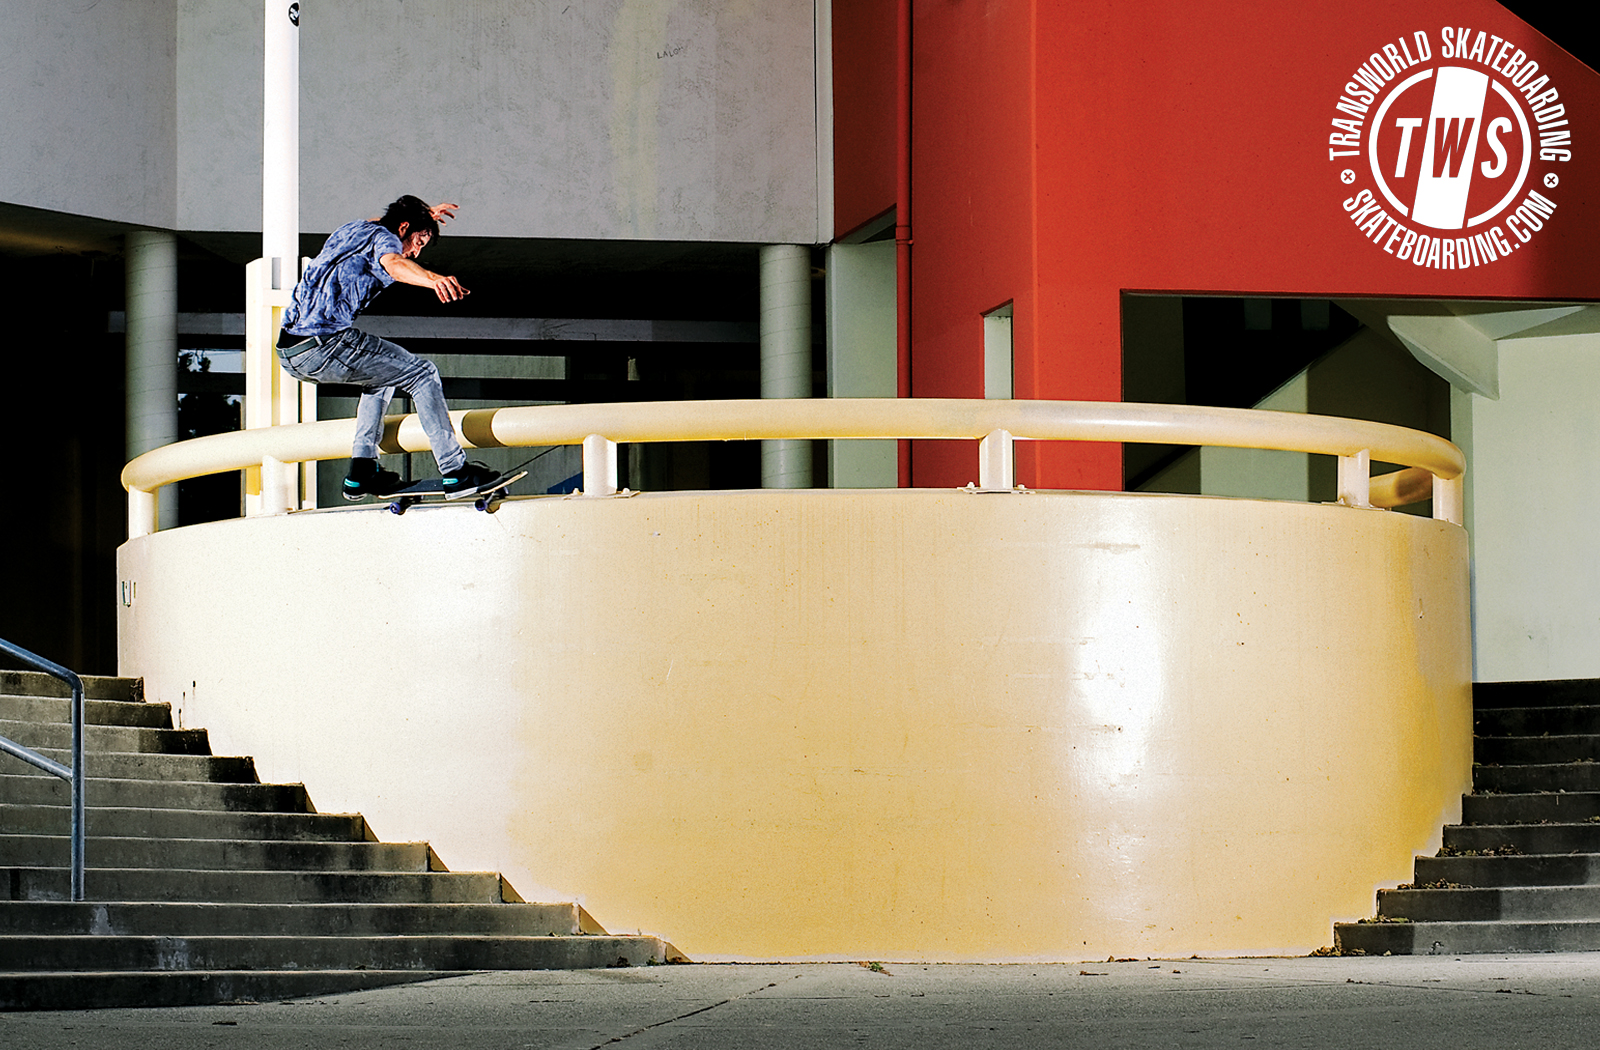 Visit TransWorld Skateboarding and grab a wallpaper featuring Altamont 1600x1050